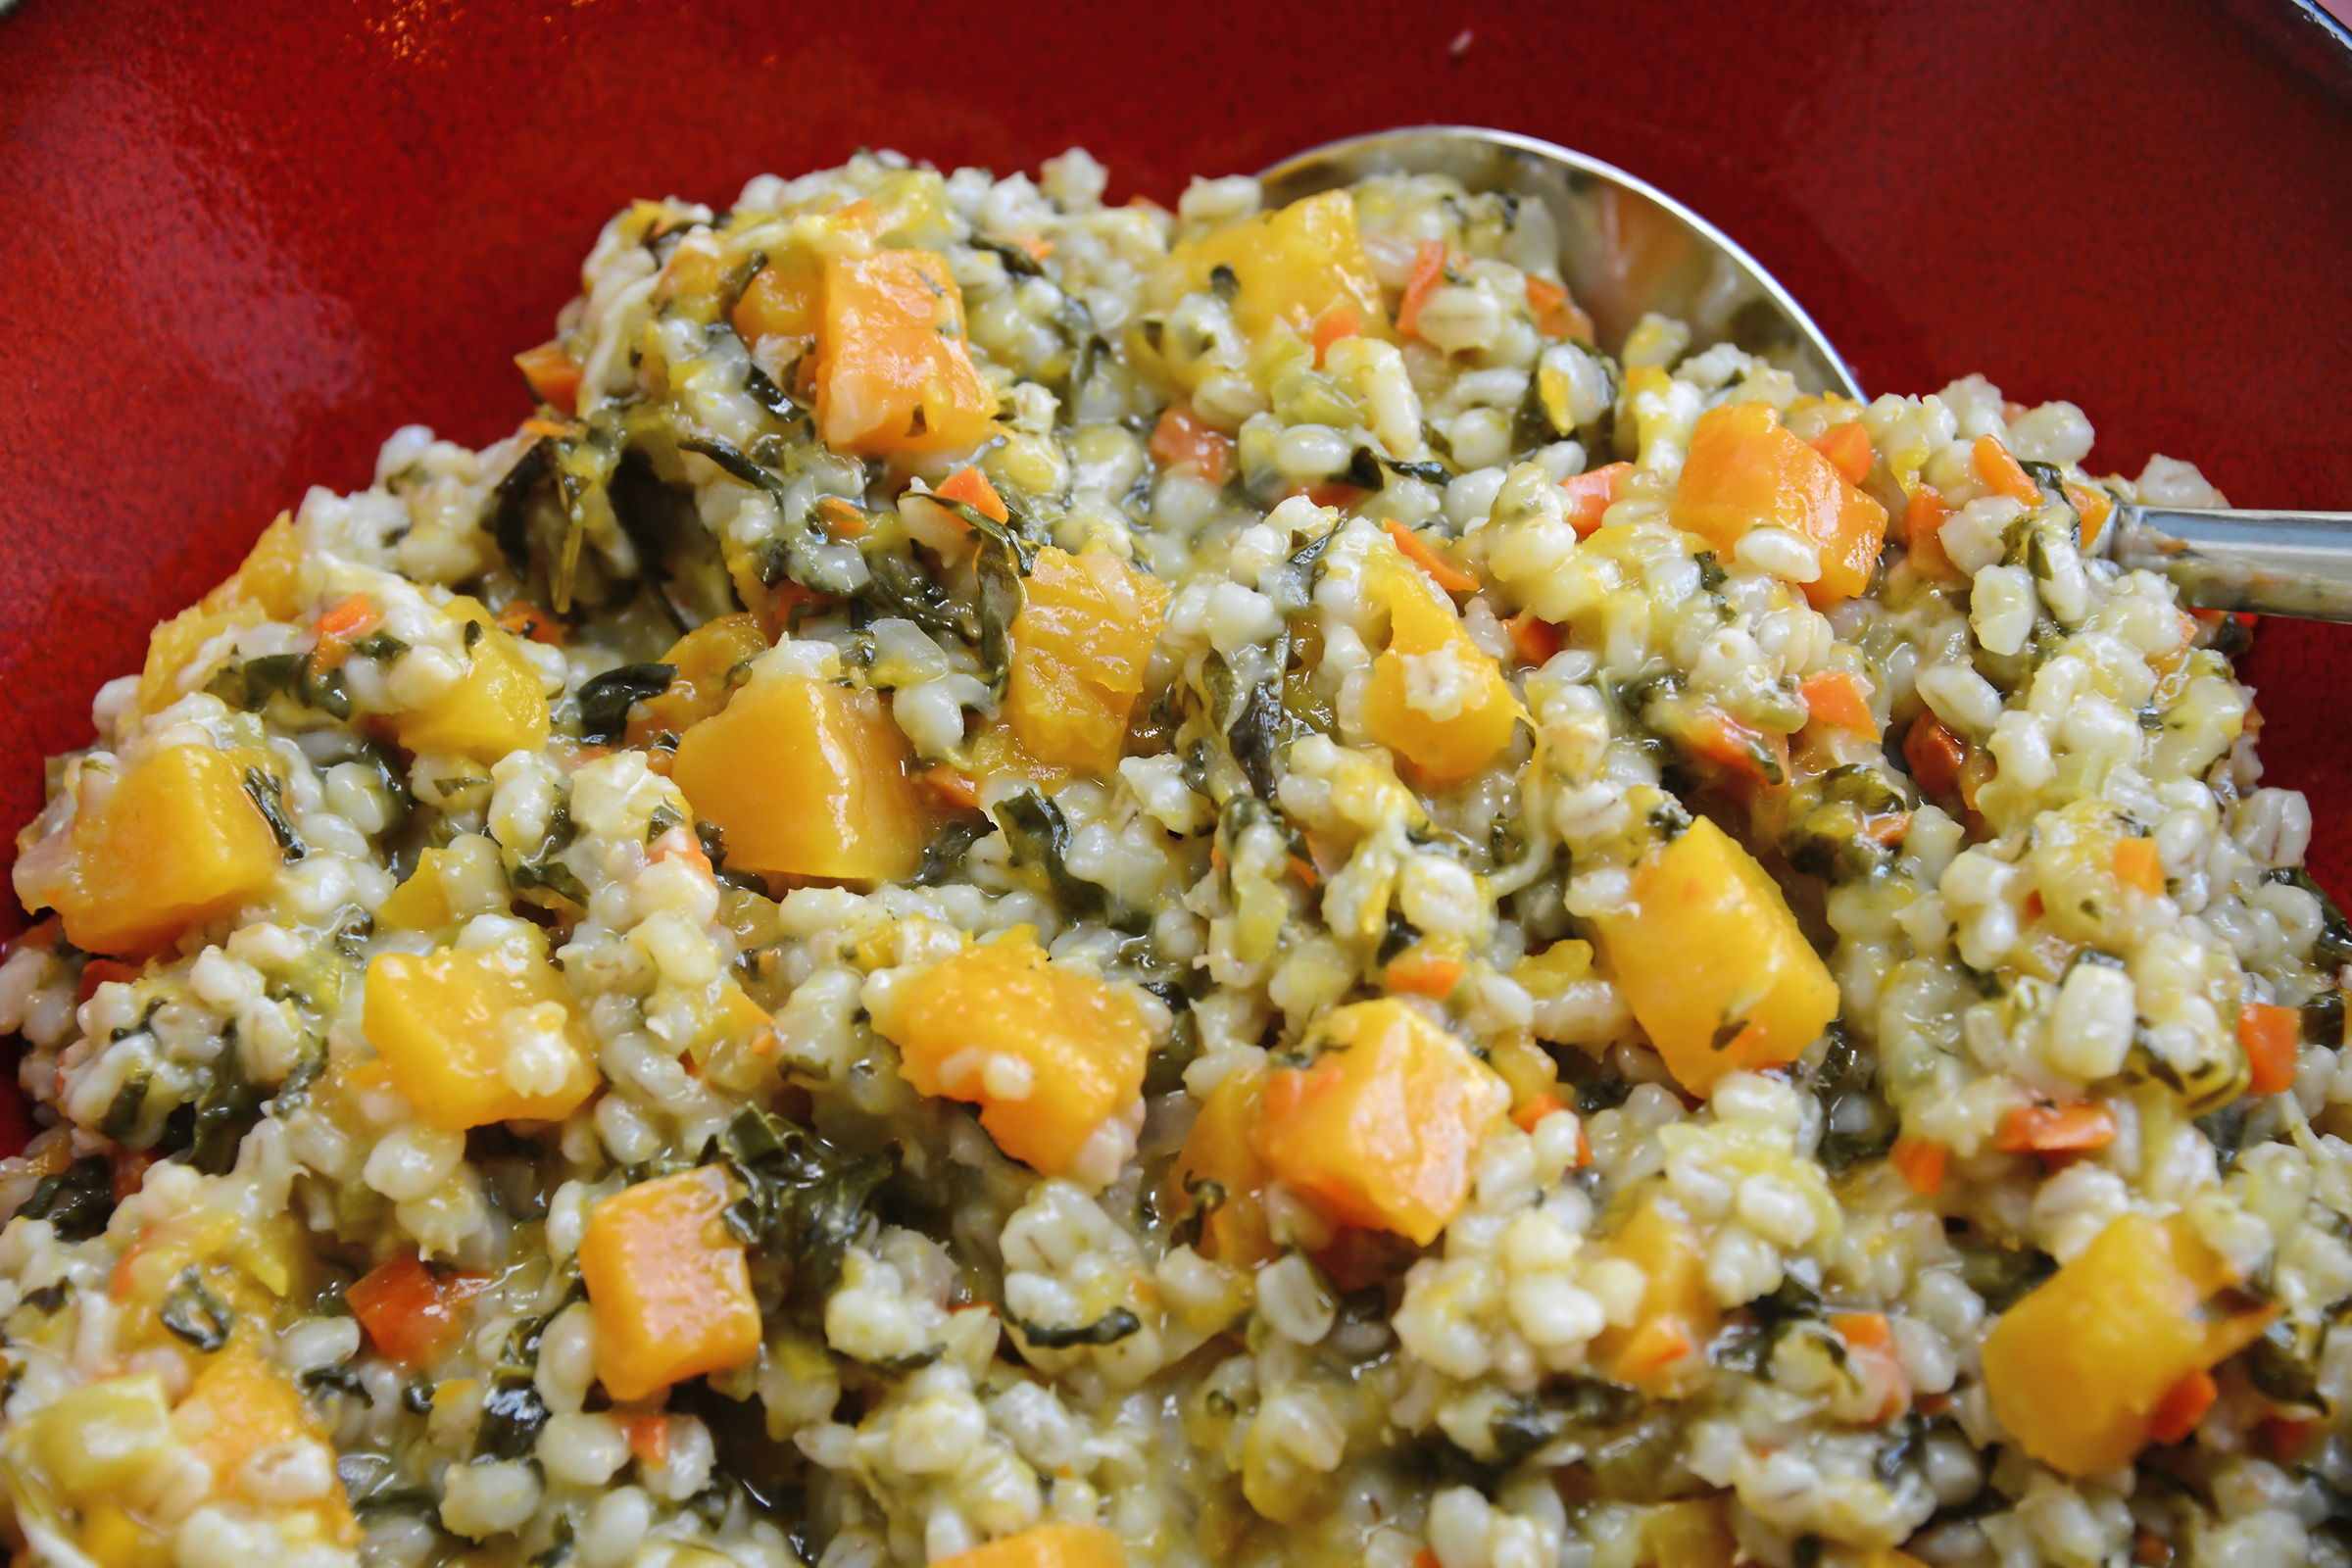 """20171101lf-Thanksgiving04-3 Barley, Kale and Butternut Squash Risotto from """"Lidia's Celebrate Like an Italian."""""""